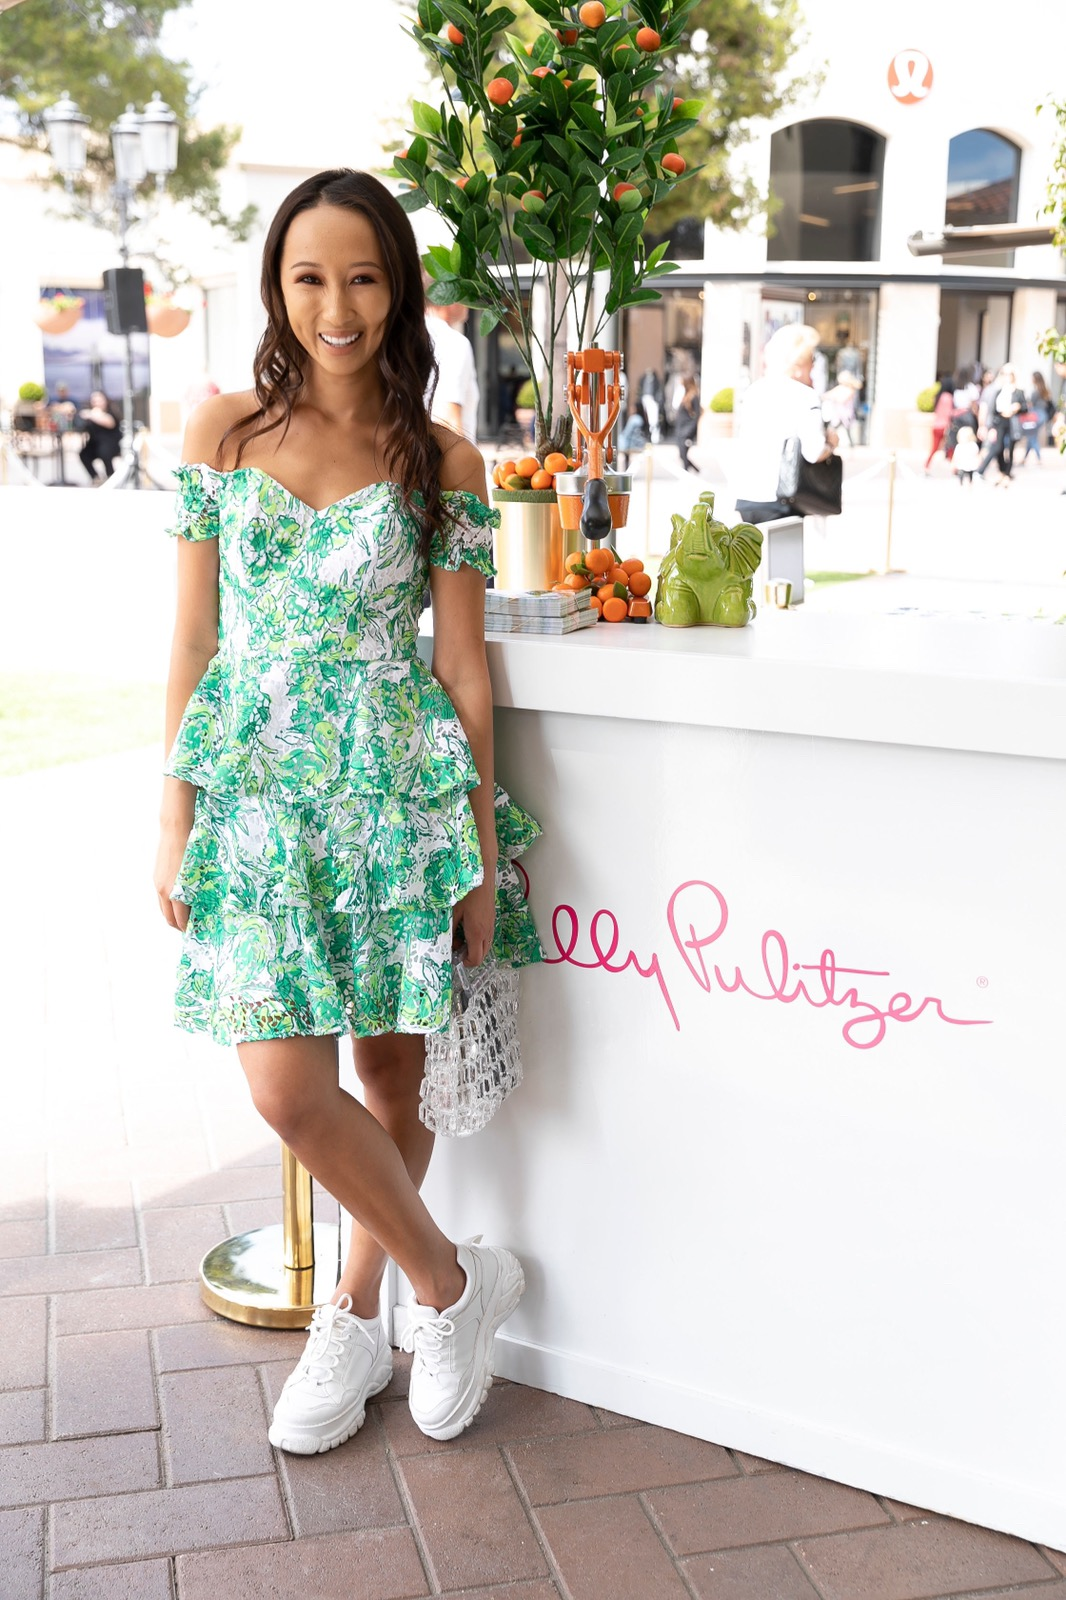 Of course had to come celebrate in my FaVourite lilly pulitzer dress… - The latest Cicely Off the Shoulder Dress// Leaf-print lace brings signature tropical vibes to a tiered fit-and-flare dress with a flirty off-the-shoulder sweetheart neckline.